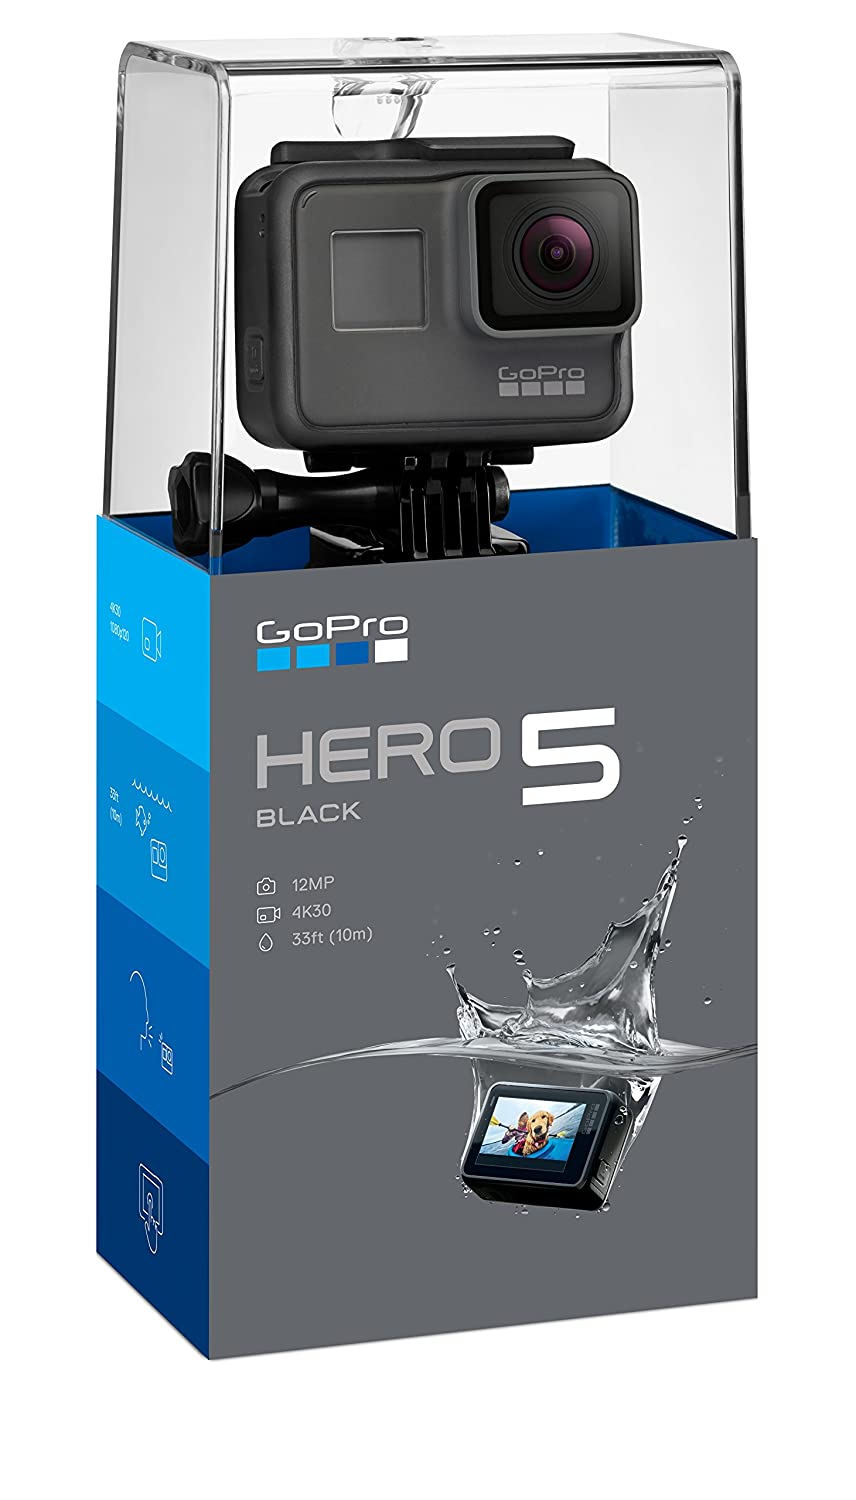 Amazon.com: GoPro Hero5 negro: GoPro: Camera & Photo